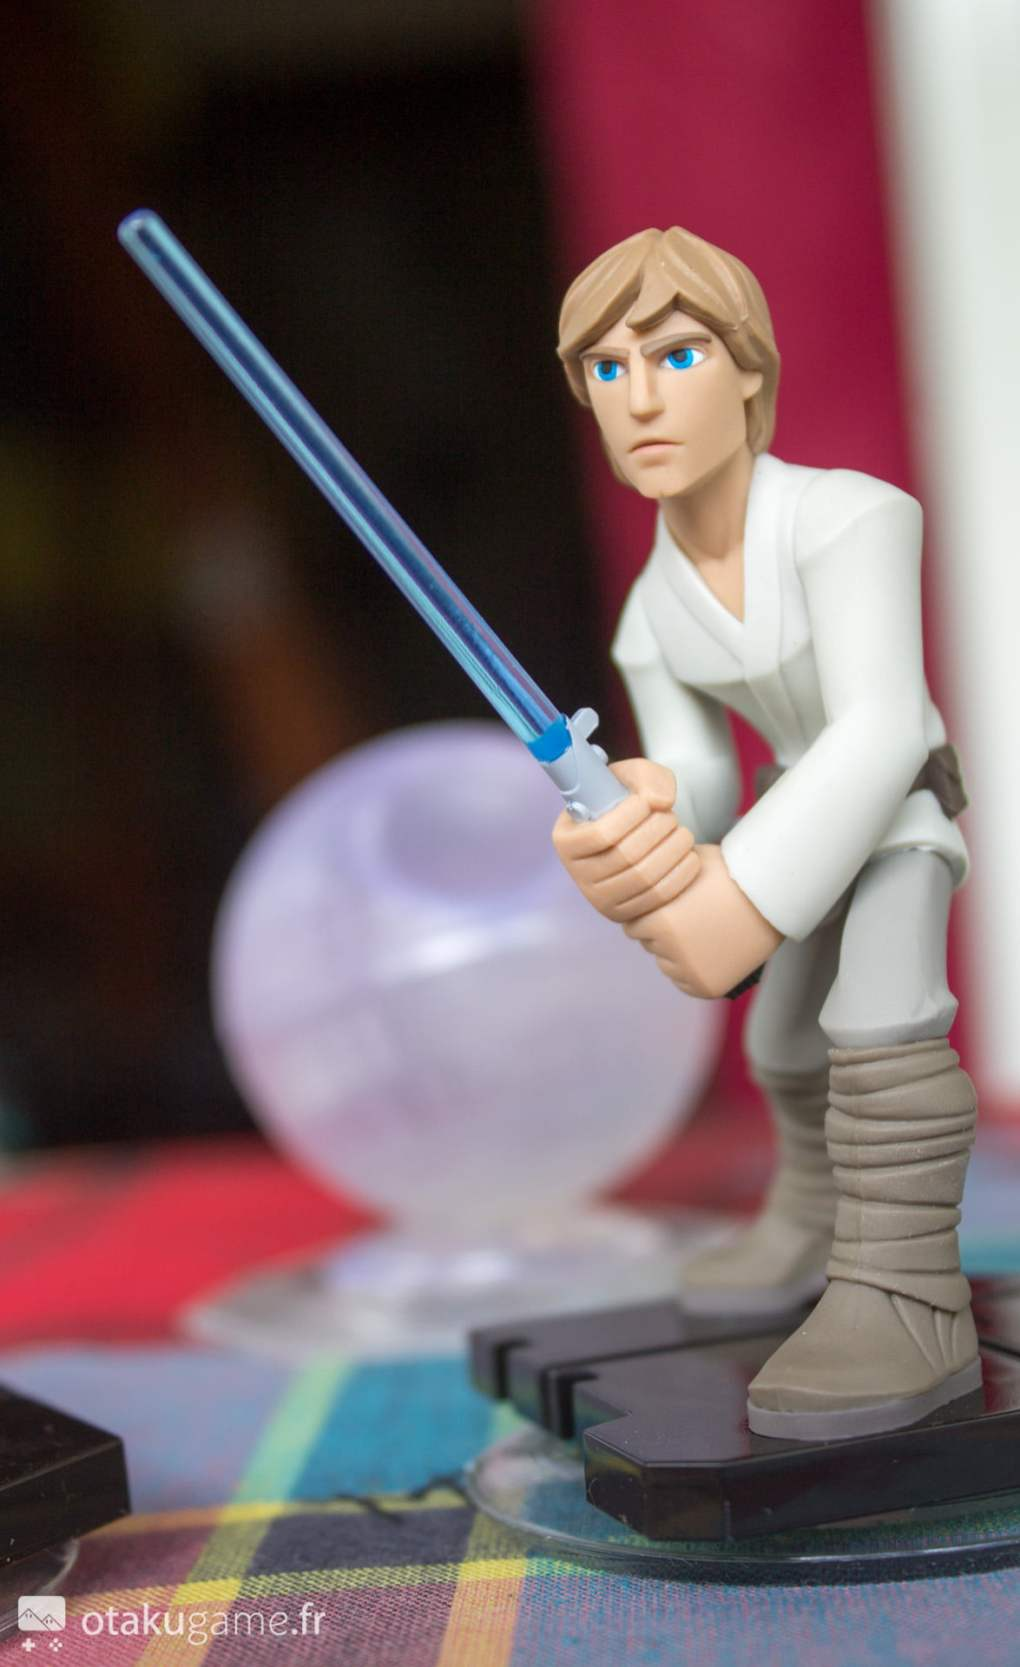 Disney Infinity 3.0 Star Wars (Luke)